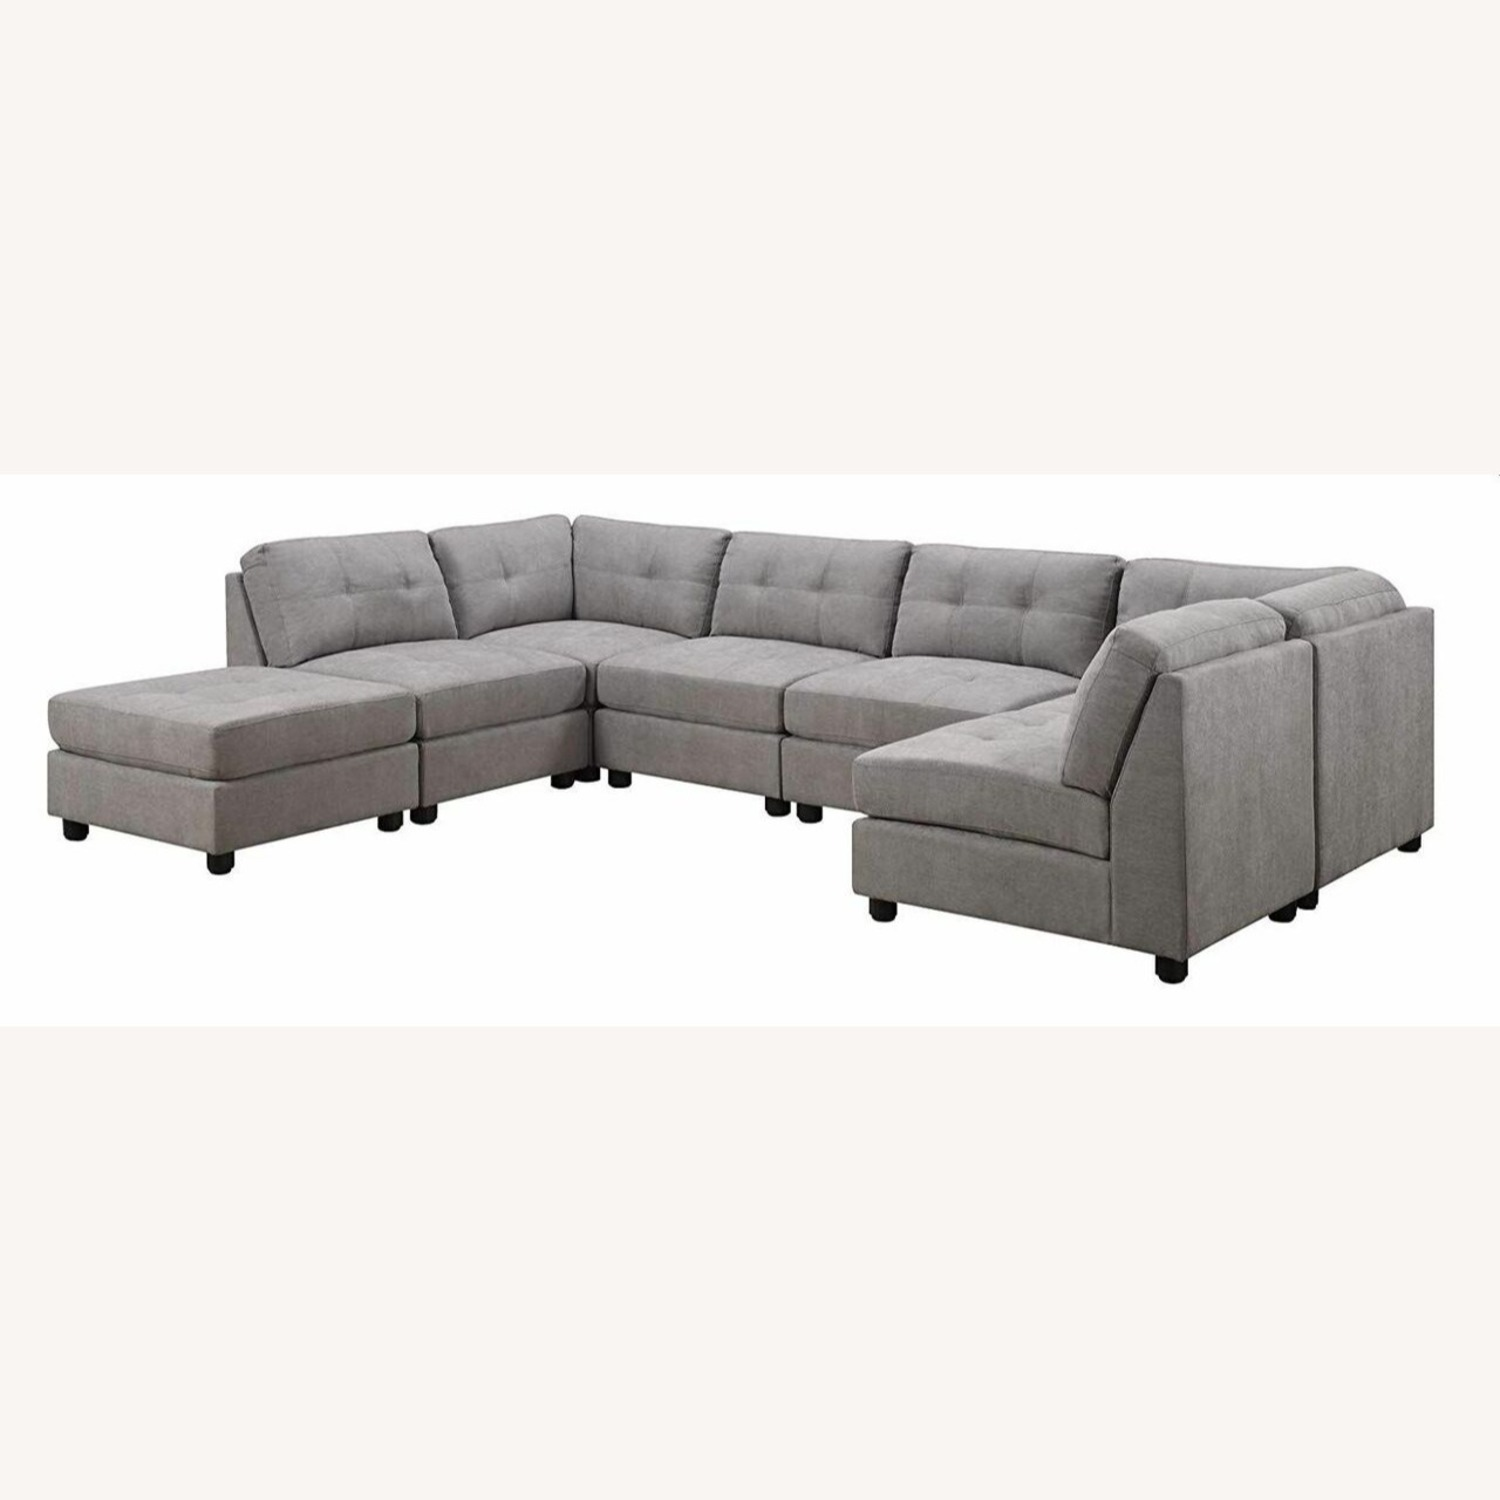 7-Piece Sectional In Dove Chenille Fabric - image-1